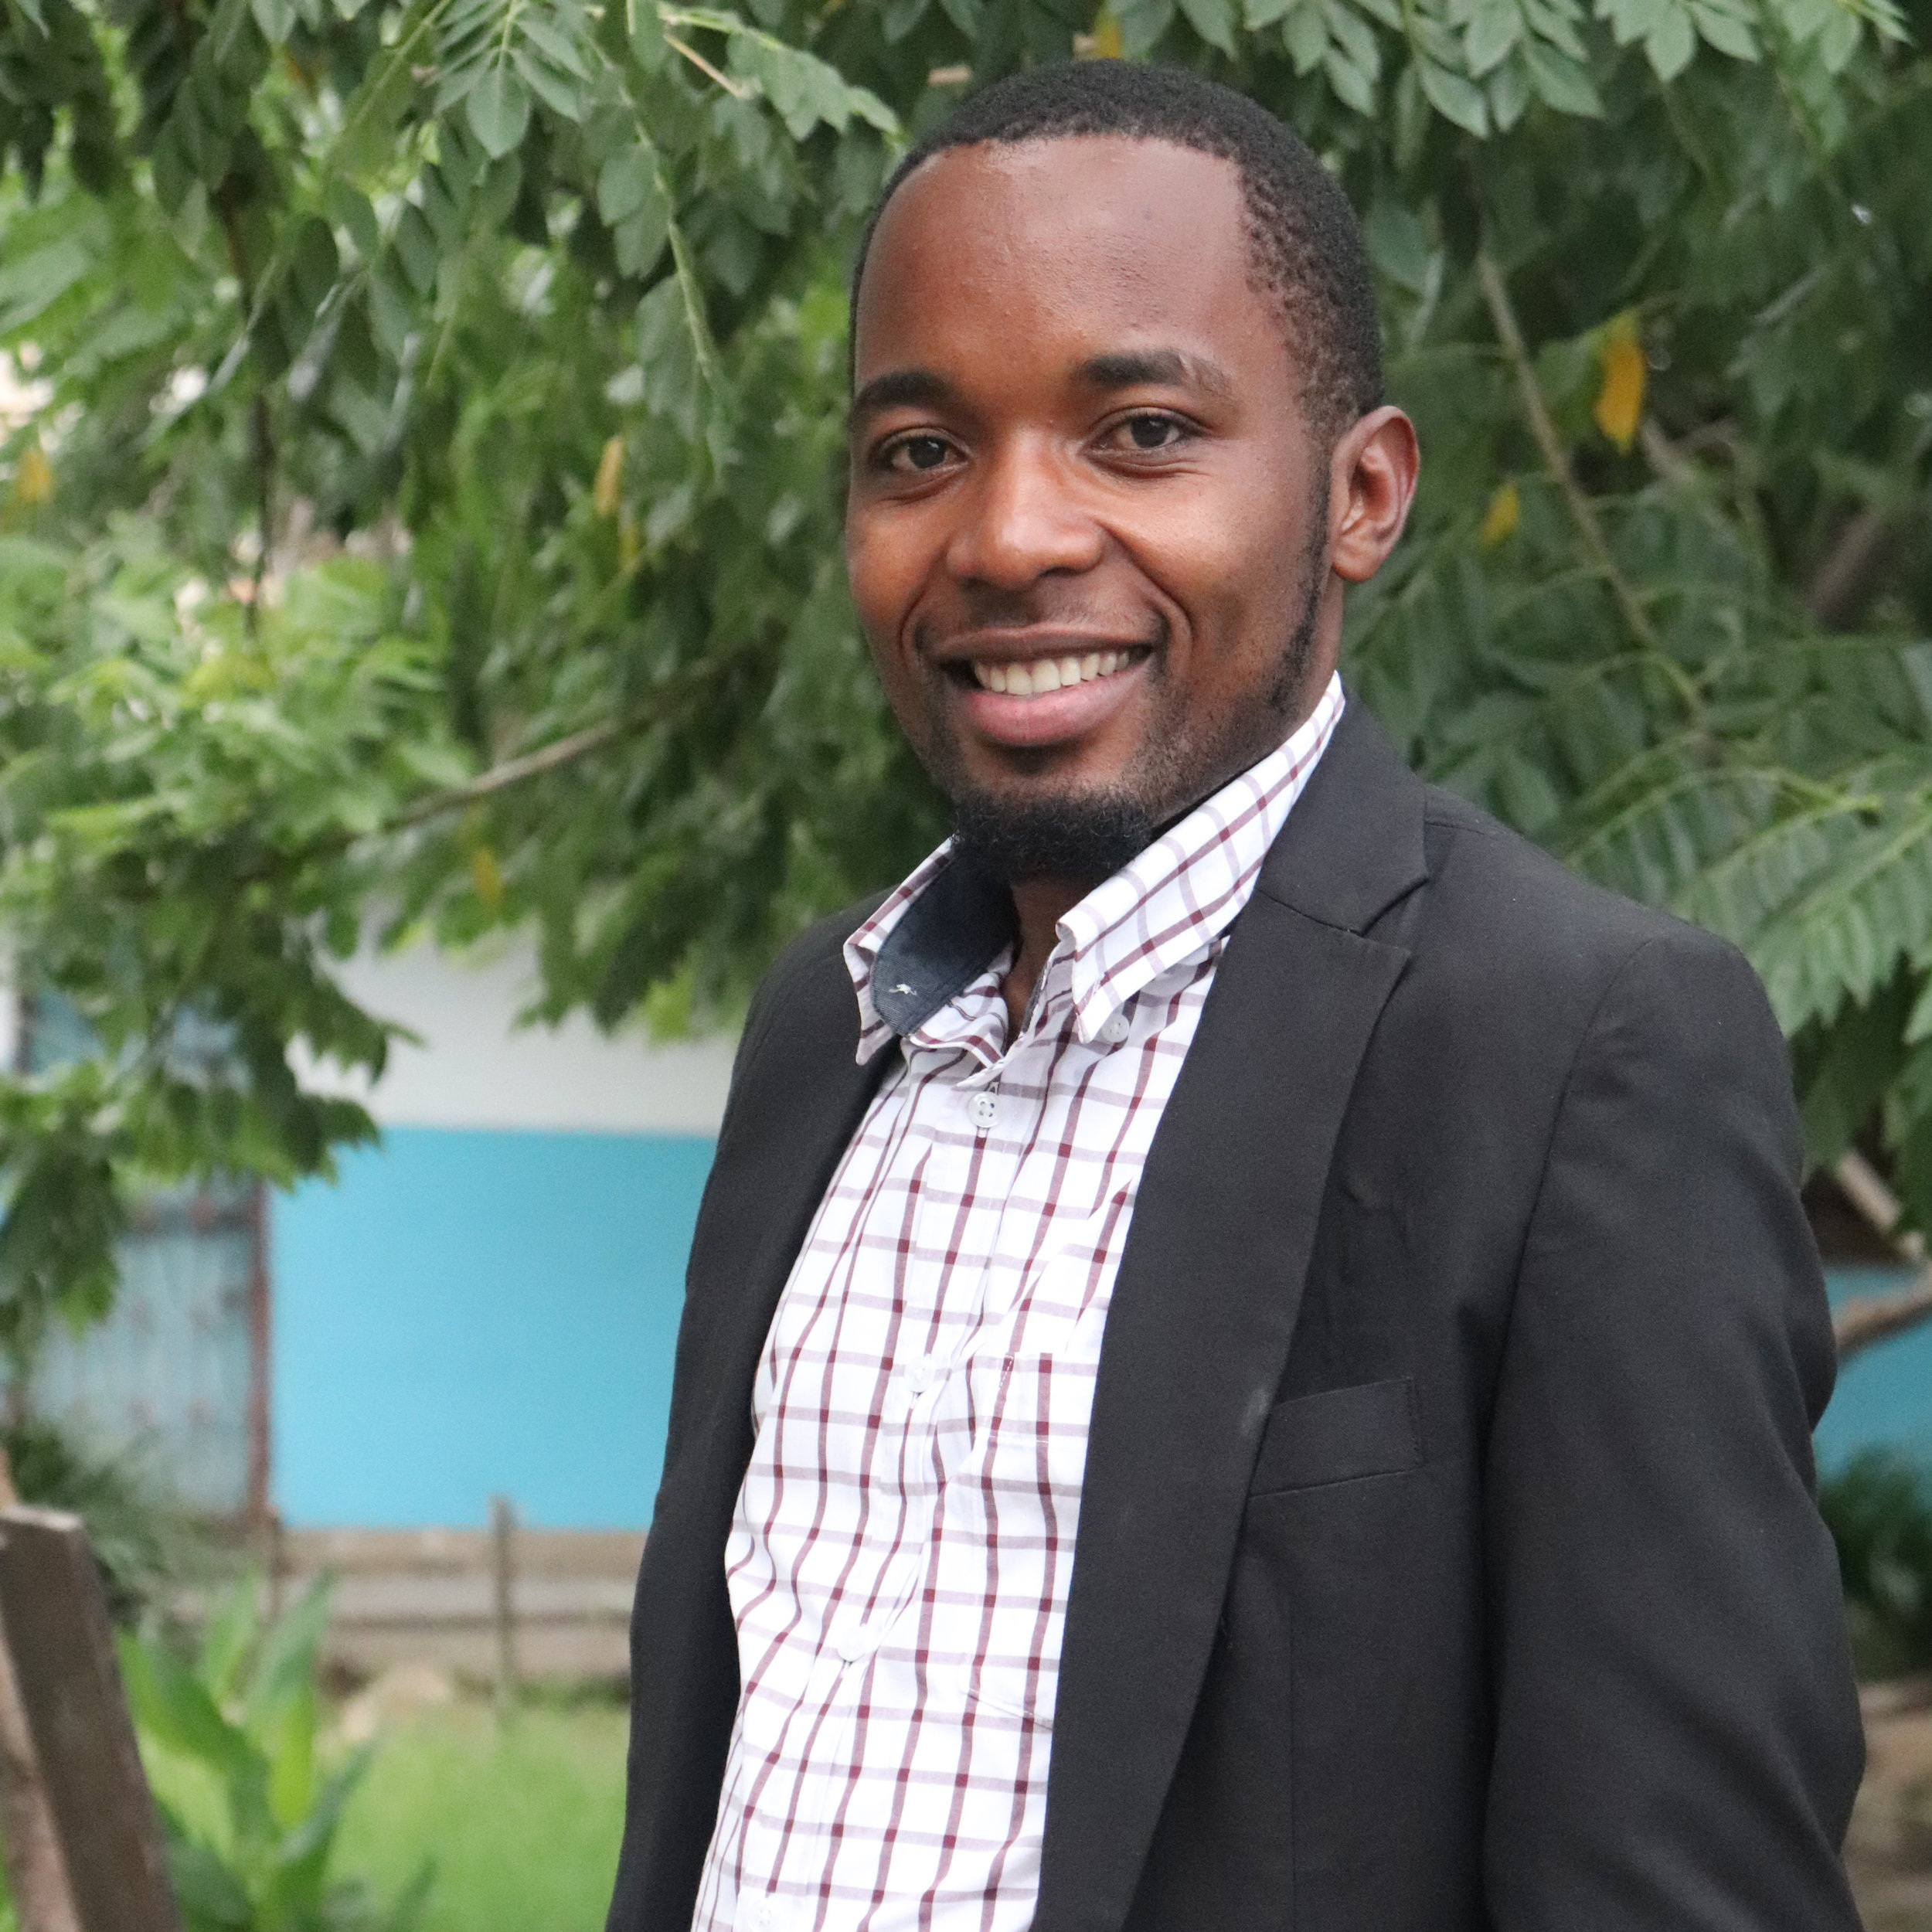 """Sadath Ahmada  FOUNDER AND EXECUTIVE SECRETARY  Sadath grew up in Nyabihanga Village, a village in Missenyi district in Kagera Region. He obtained a BA in Political Science and Public Administration in 2015 and is currently carrying out a Masters in Human Resource Management at the Open University of Tanzania. He also has a certificate in Teaching from Alharamain teachers College in 2010.  Sadath has been employed as a primary school teacher in Tabora Region since 2010 to date. While teaching, he has observed the number of orphans and vulnerable Children attending school without the necessary facilities to study properly such as school uniforms, books, pens, food and clean water. As a consequence, he decided to start supporting them at his school by using his little monthly salary, and this led to the creation of CODEWA. Sadath is now working as a an executive secretary at CODEWA.  His motto is """" the value of my life will be valued through the impacts my life brought to the lives of the Children """"."""